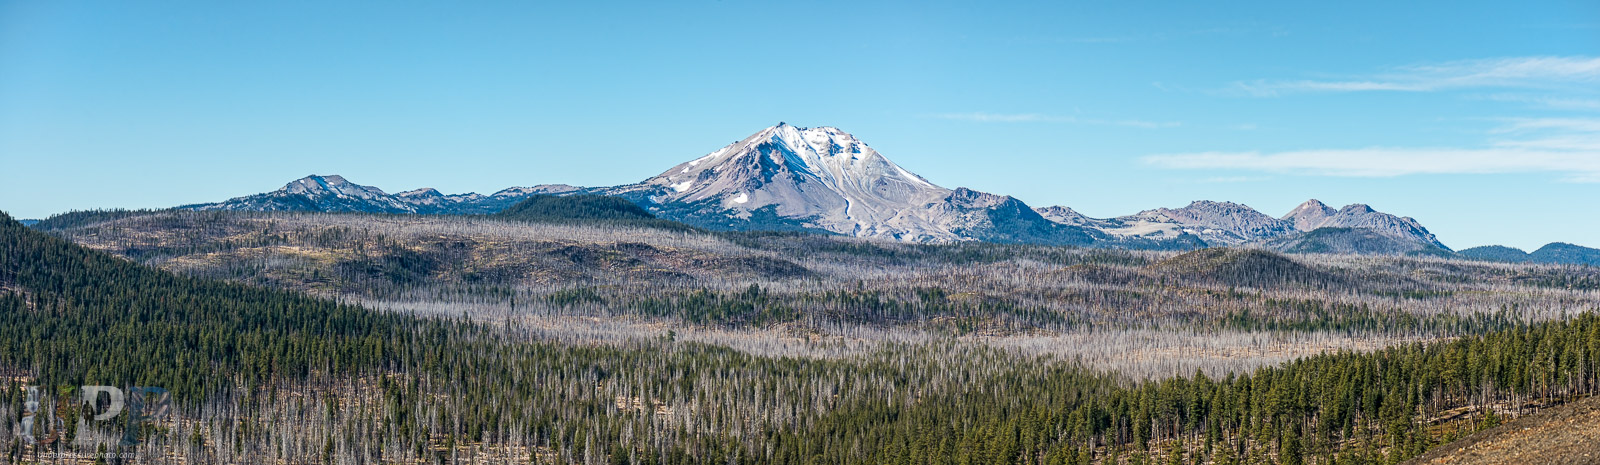 Lassen Peak from the Cinder Cone